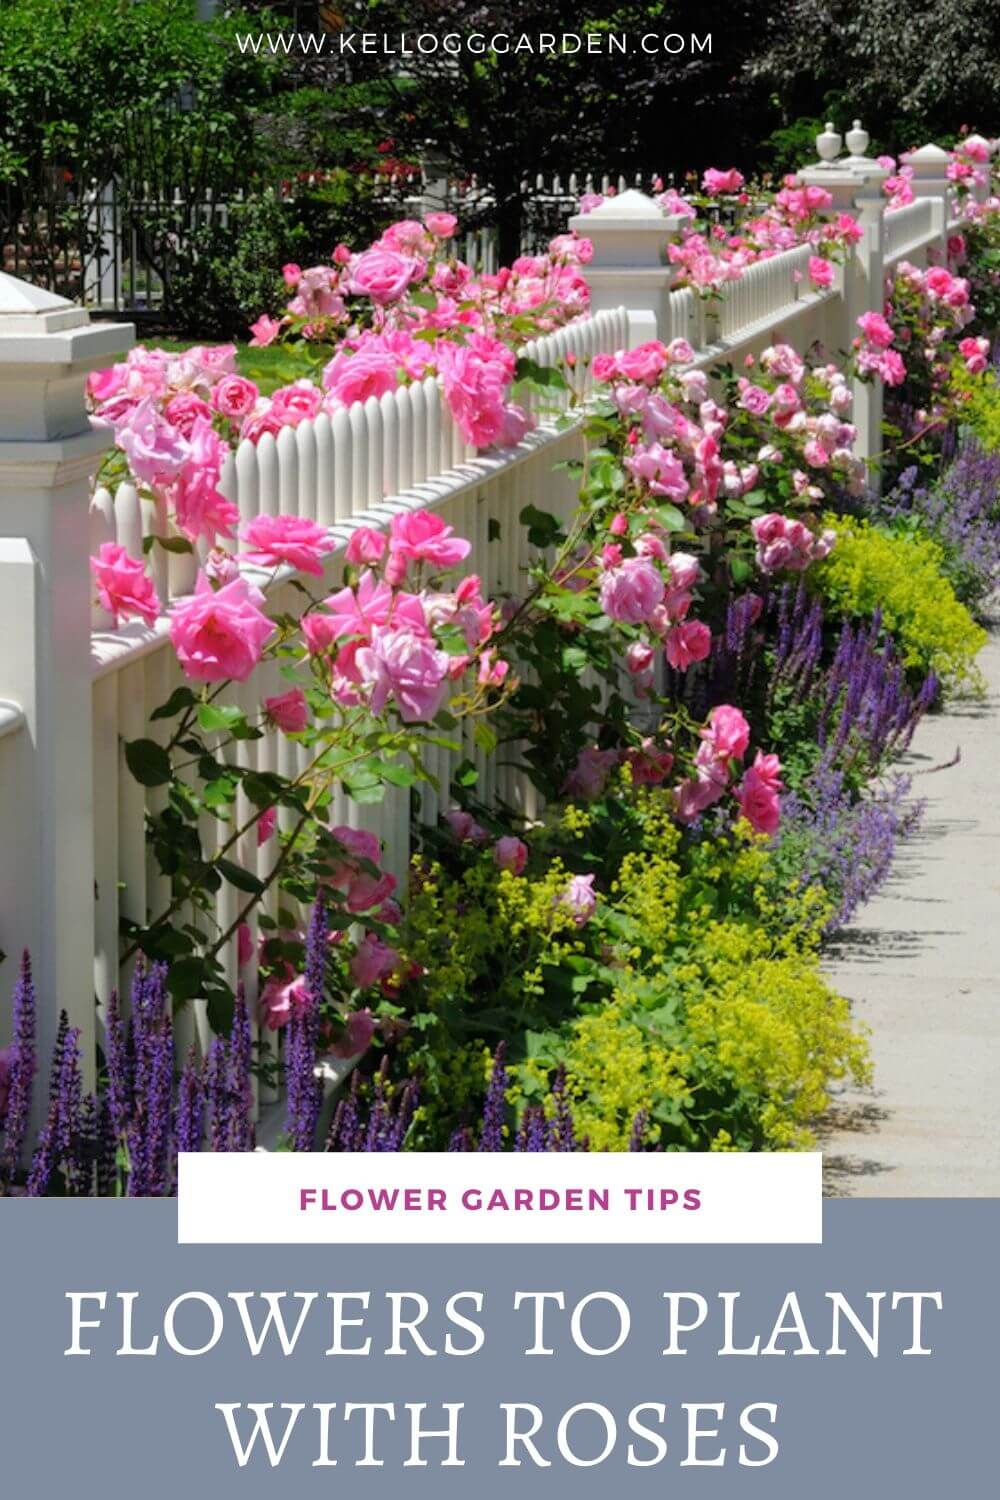 Companion Plants For Roses Kellogg Garden Organics